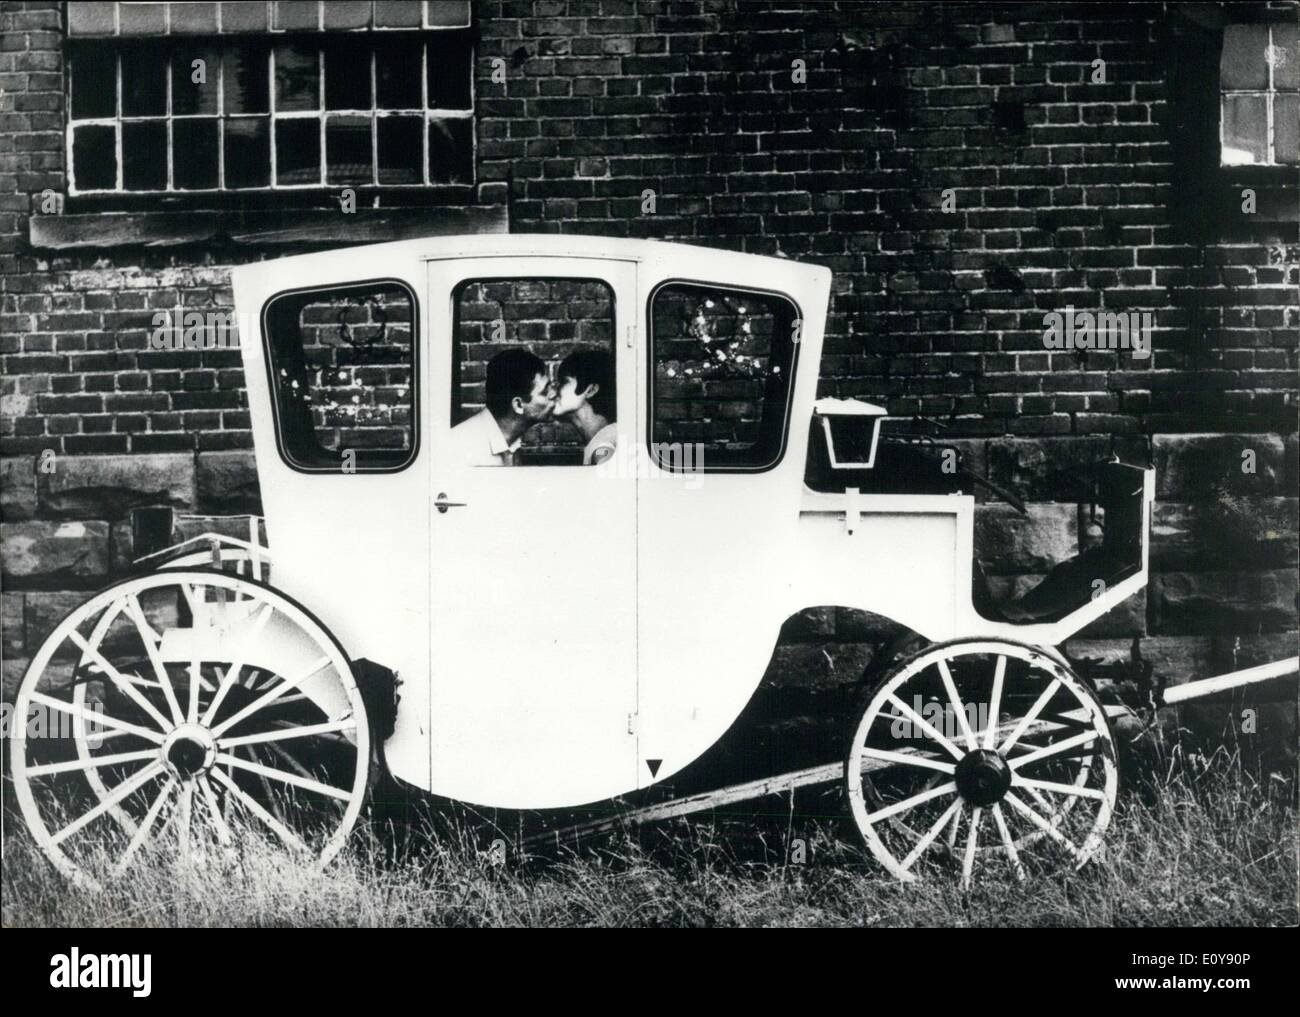 May 21, 1969 - This white marriage carriage was photographed as part of the Dr. Burno Uhl Competition of the Association of German Amateur Photographers. - Stock Image